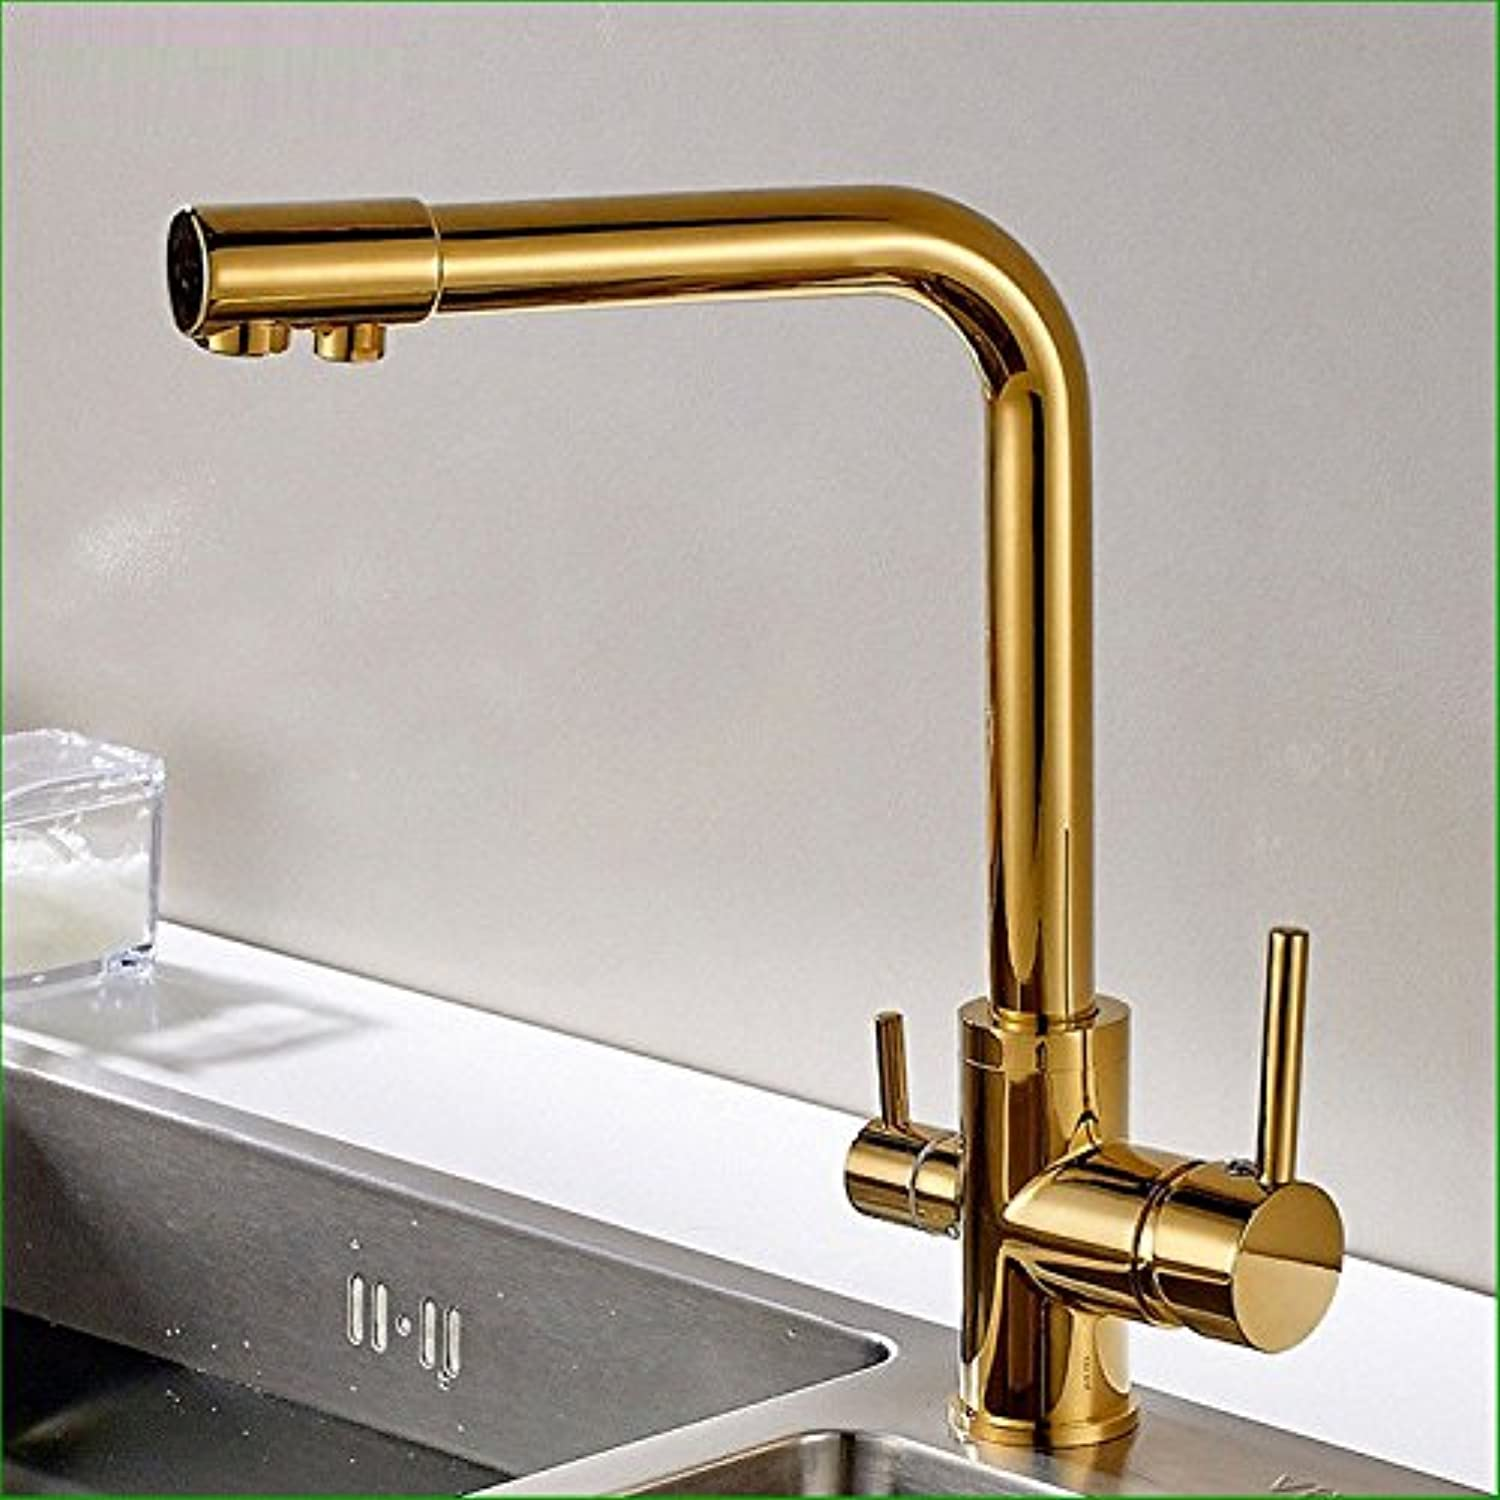 Hlluya Professional Sink Mixer Tap Kitchen Faucet The copper gold plated two with a dual-head kitchen faucet sink kitchen sink, hot and cold water basin mixer